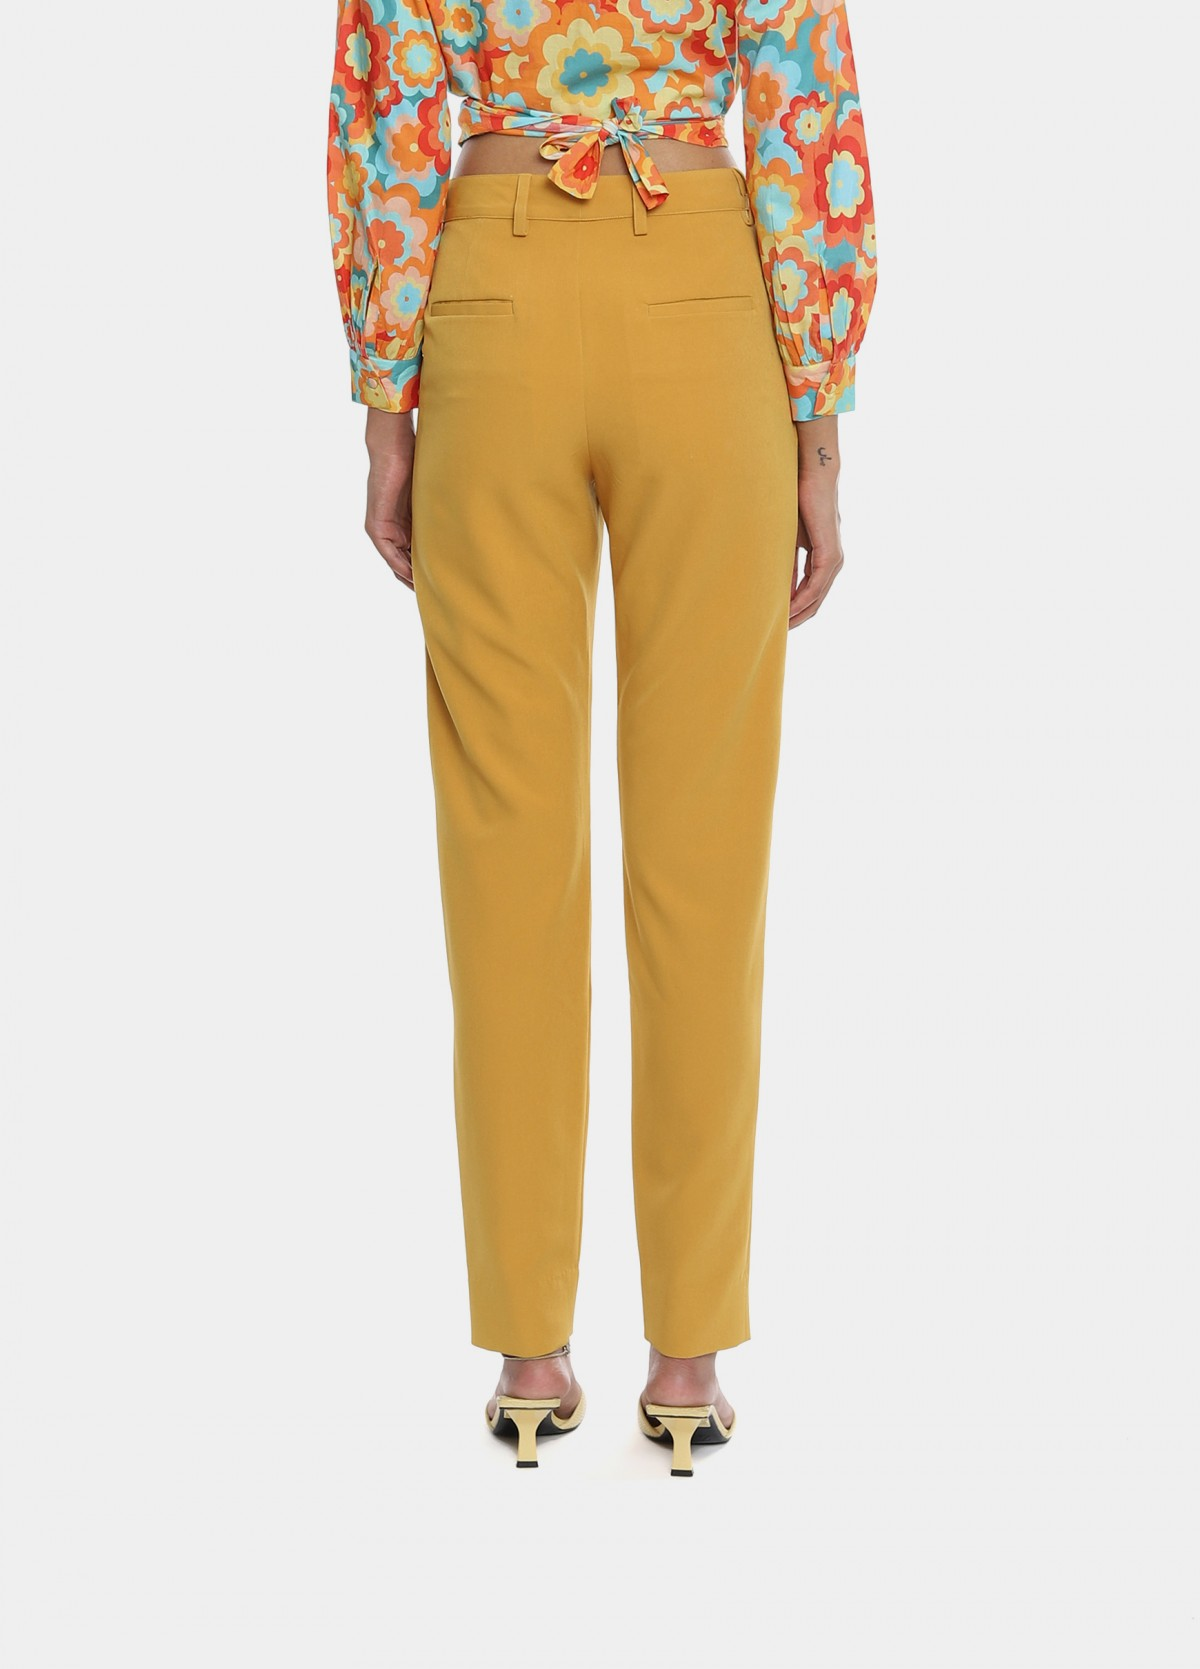 The Peace Pant